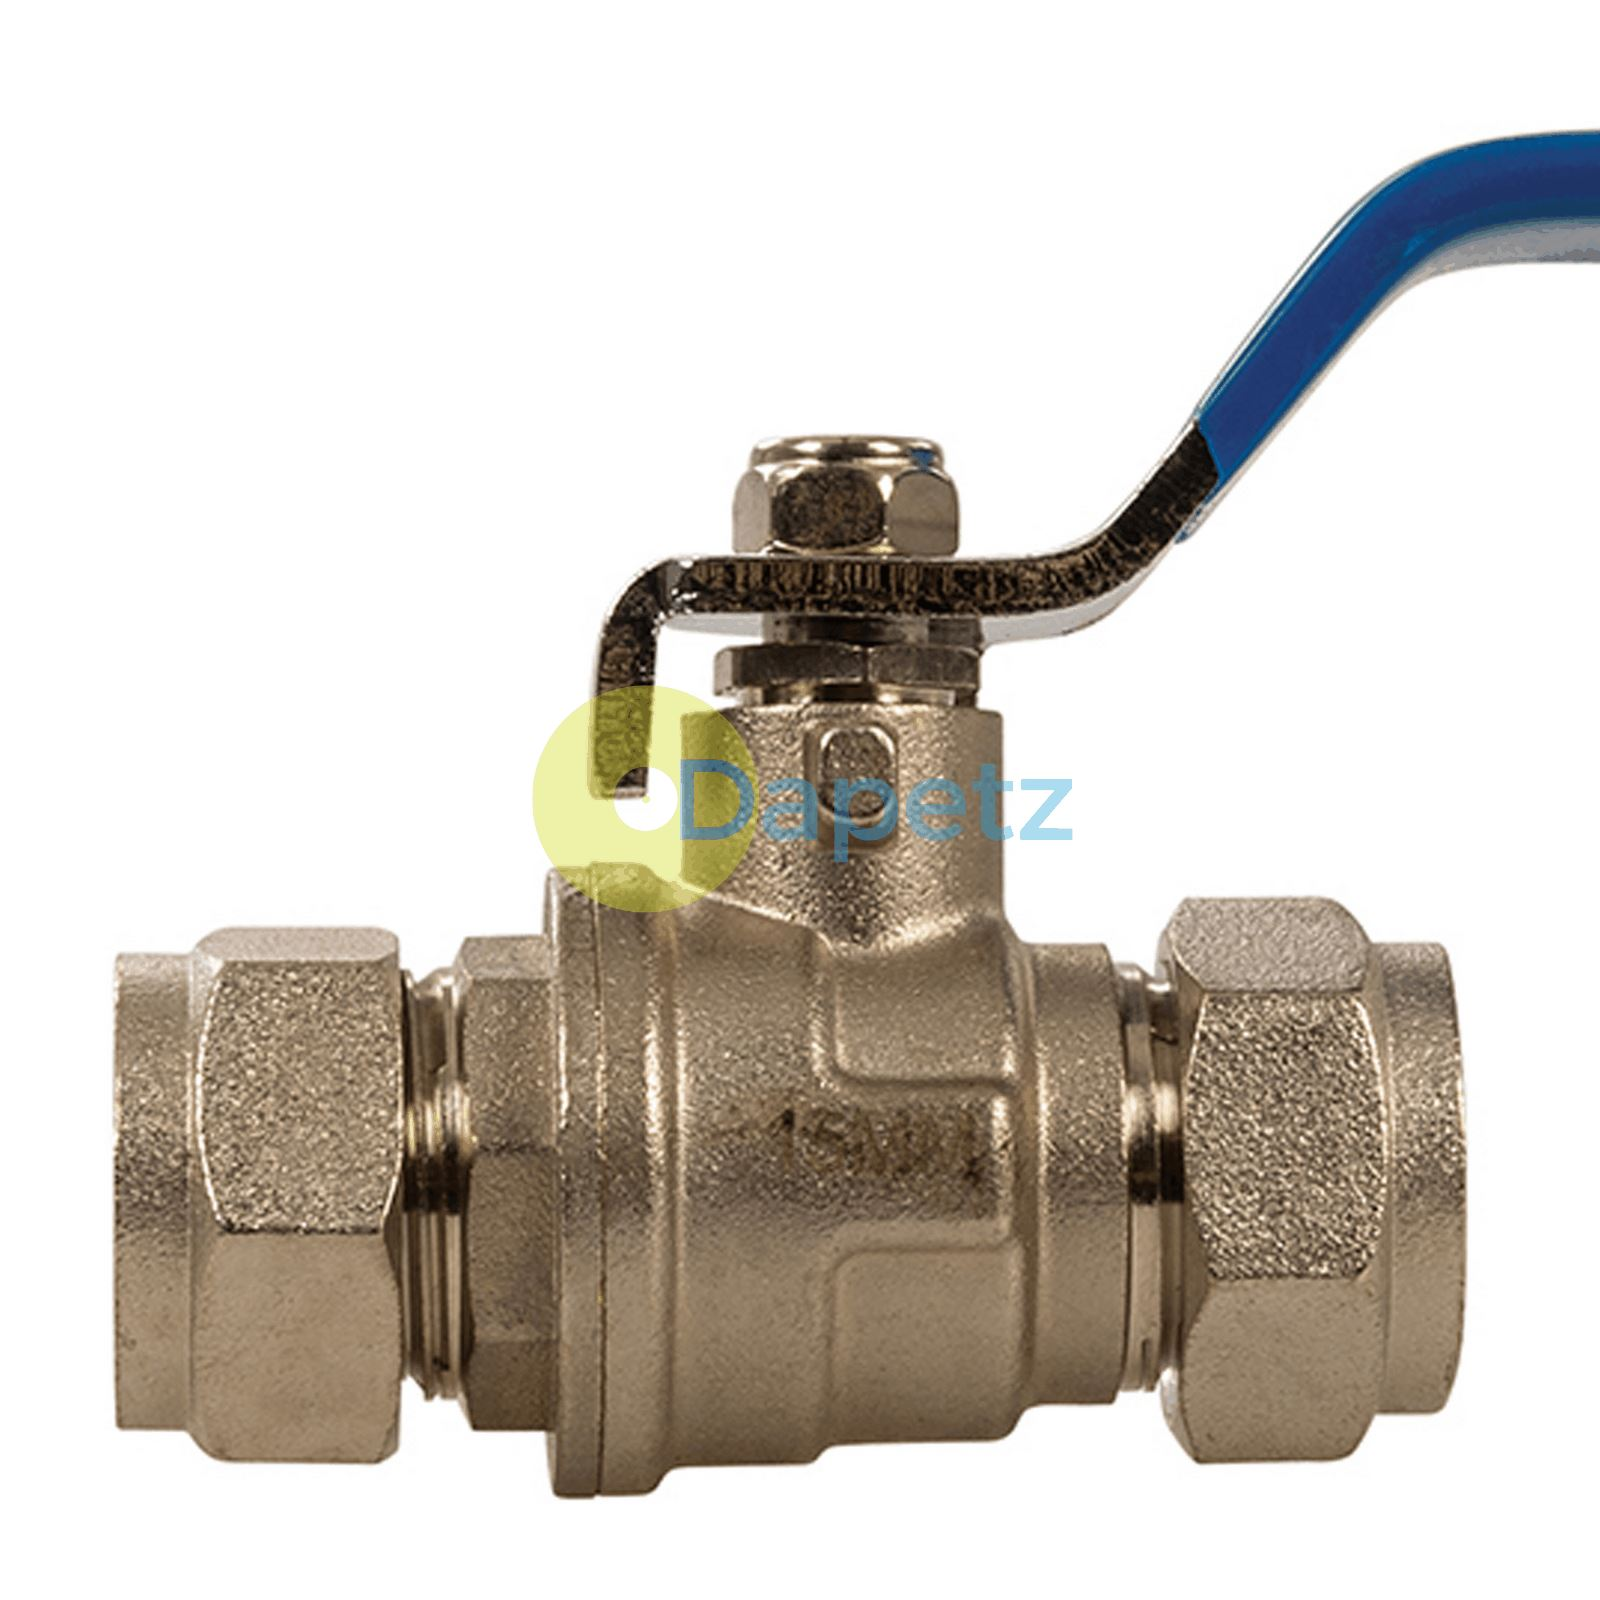 details about lever ball valve 15mm/22mm blue/ red handle heavy duty chrome  plated full bore